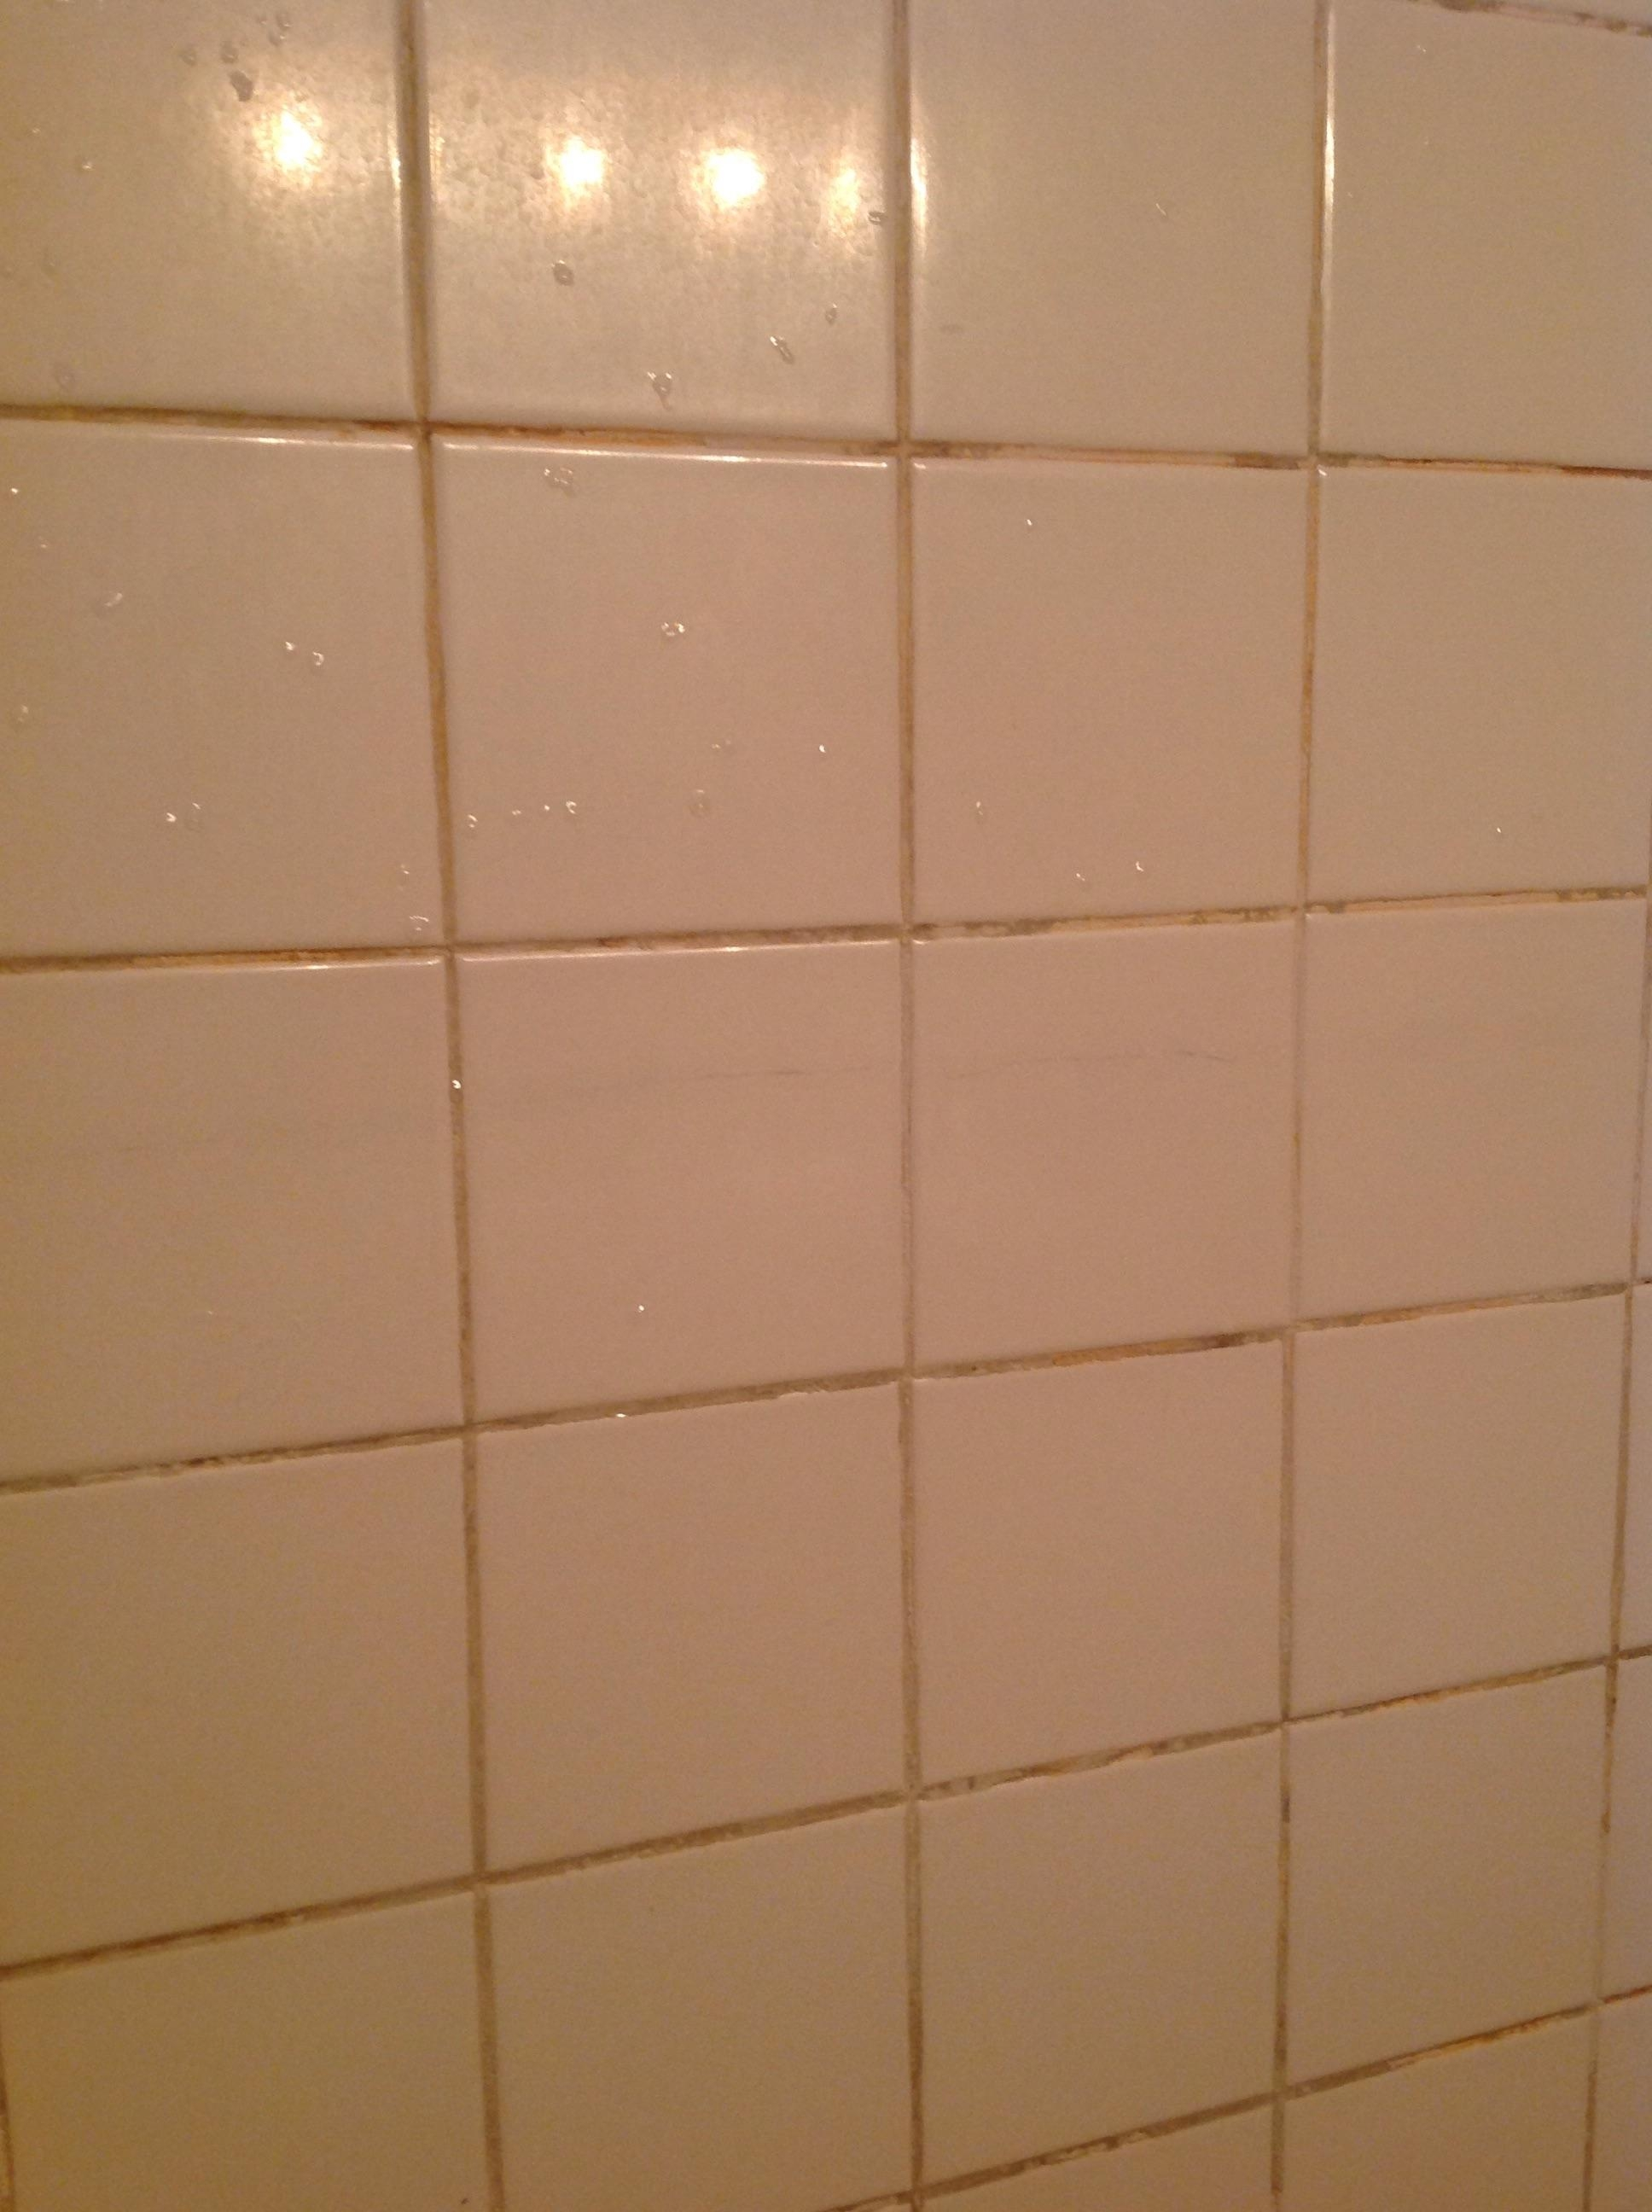 Bathroom Tile Grout Repair Kit Image Of Bathroom And Closet